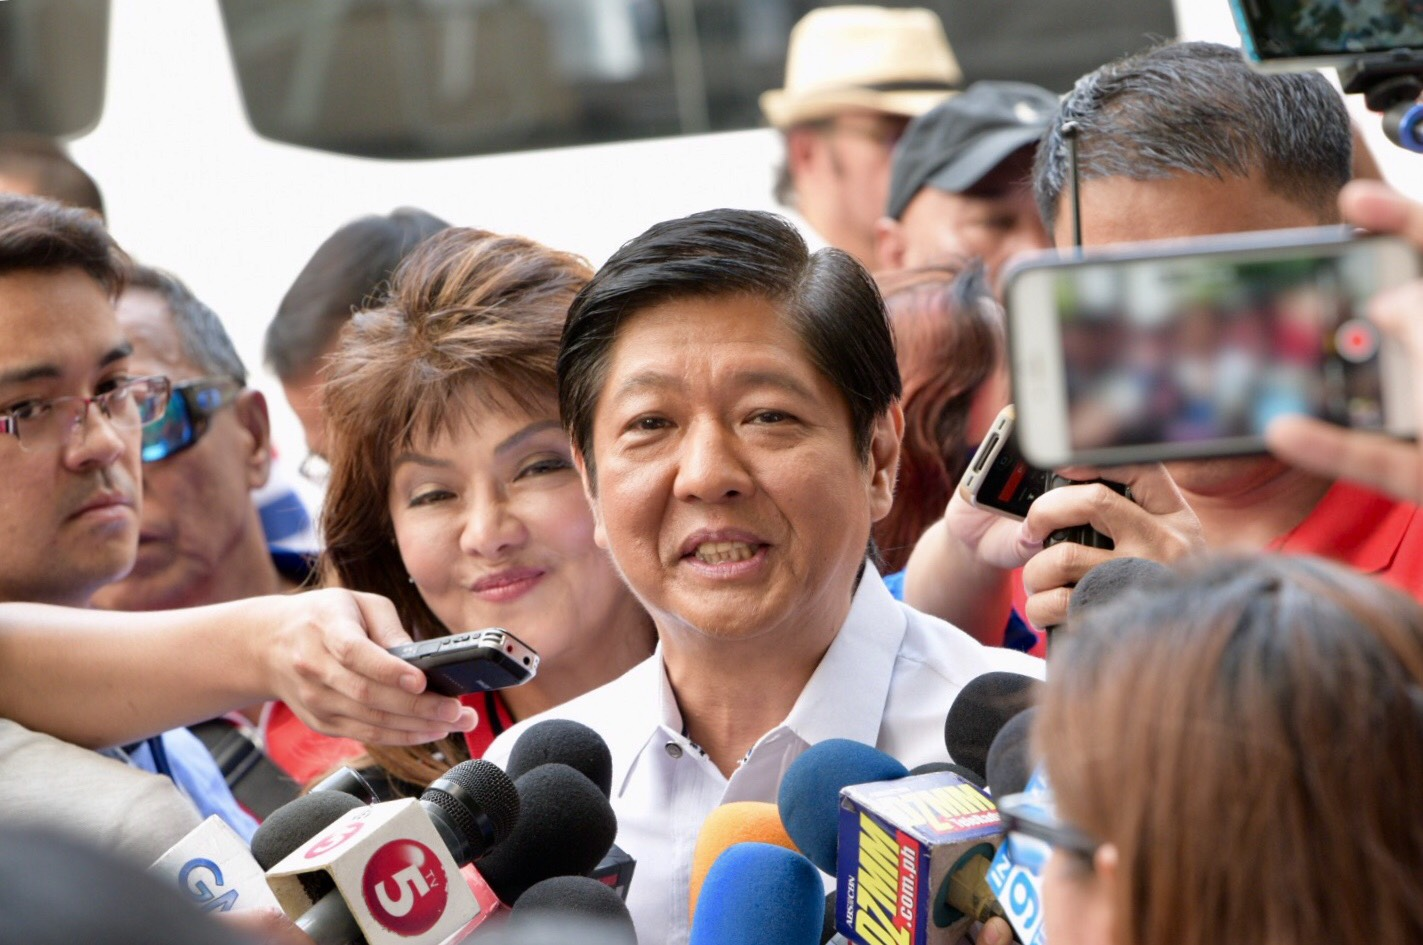 ENTRY ALLOWED? Former senator Bongbong Marcos and his sister, Ilocos Norte Governor Imee Marcos, grant a media interview after visiting the ballot recount site on April 2, 2018. Photo by LeAnne Jazul/Rappler